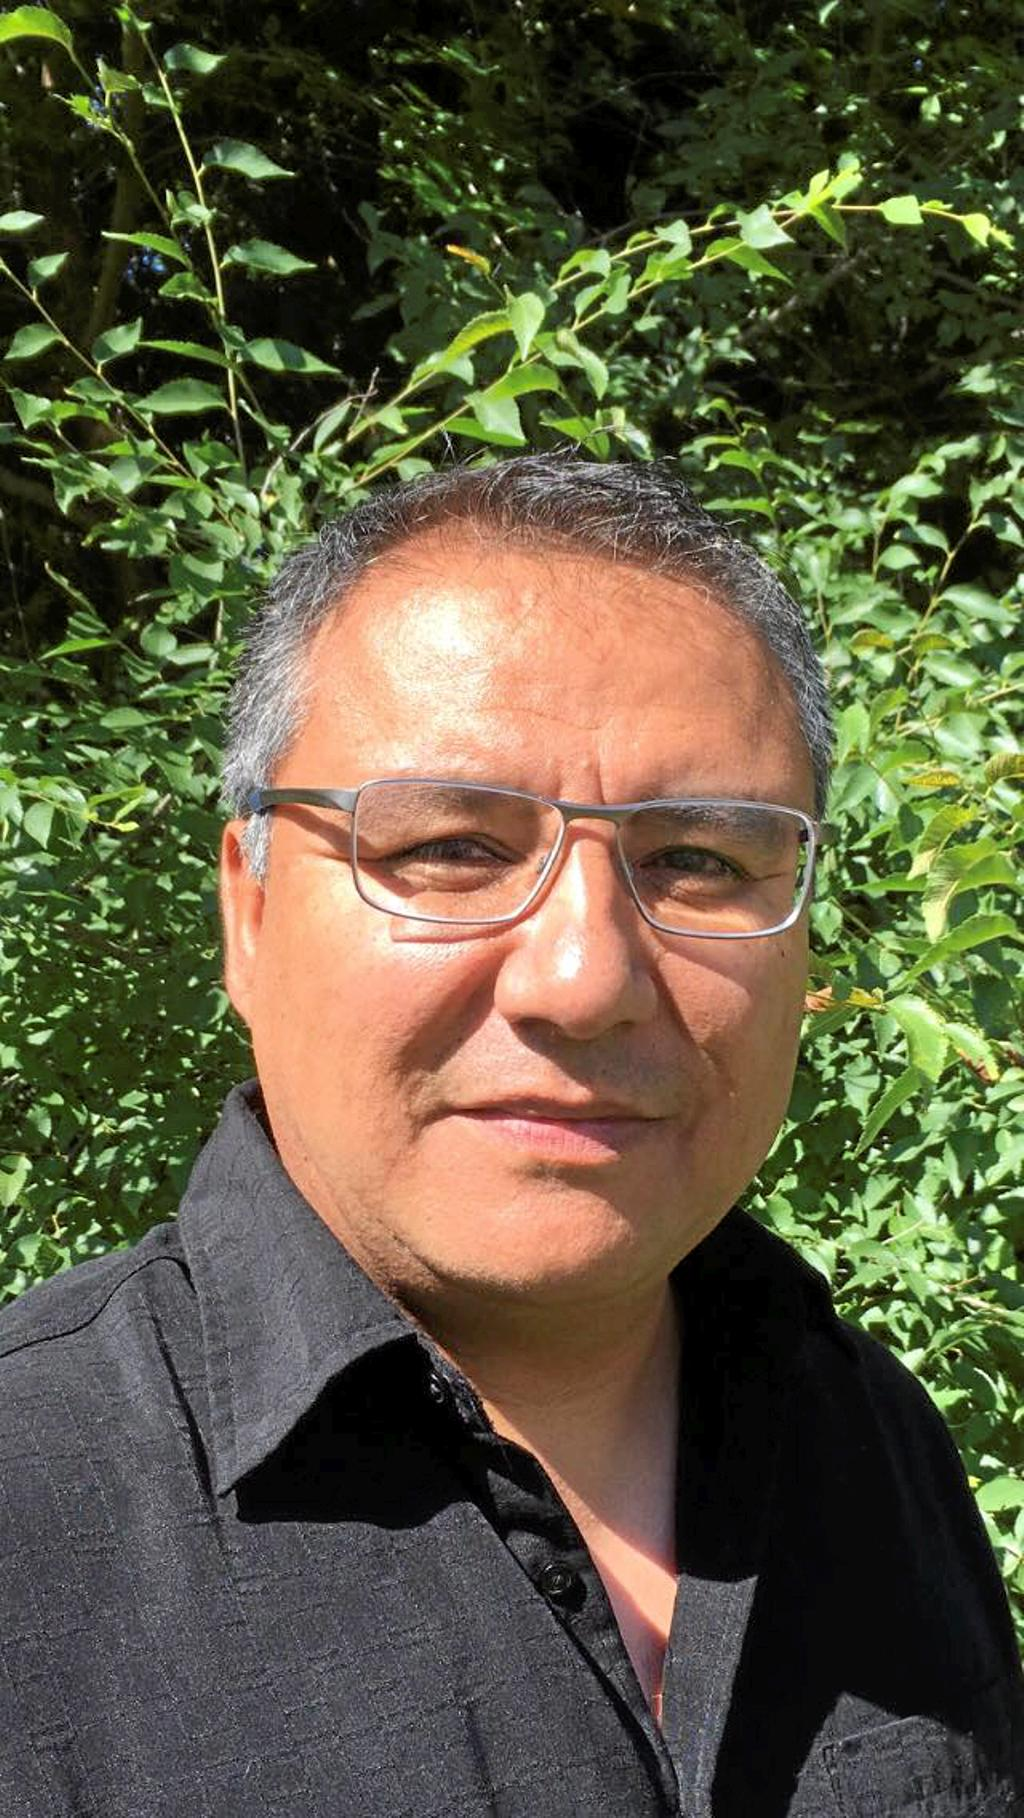 Christian Flamand veut devenir le prochain grand chef de la nation atikamekw.